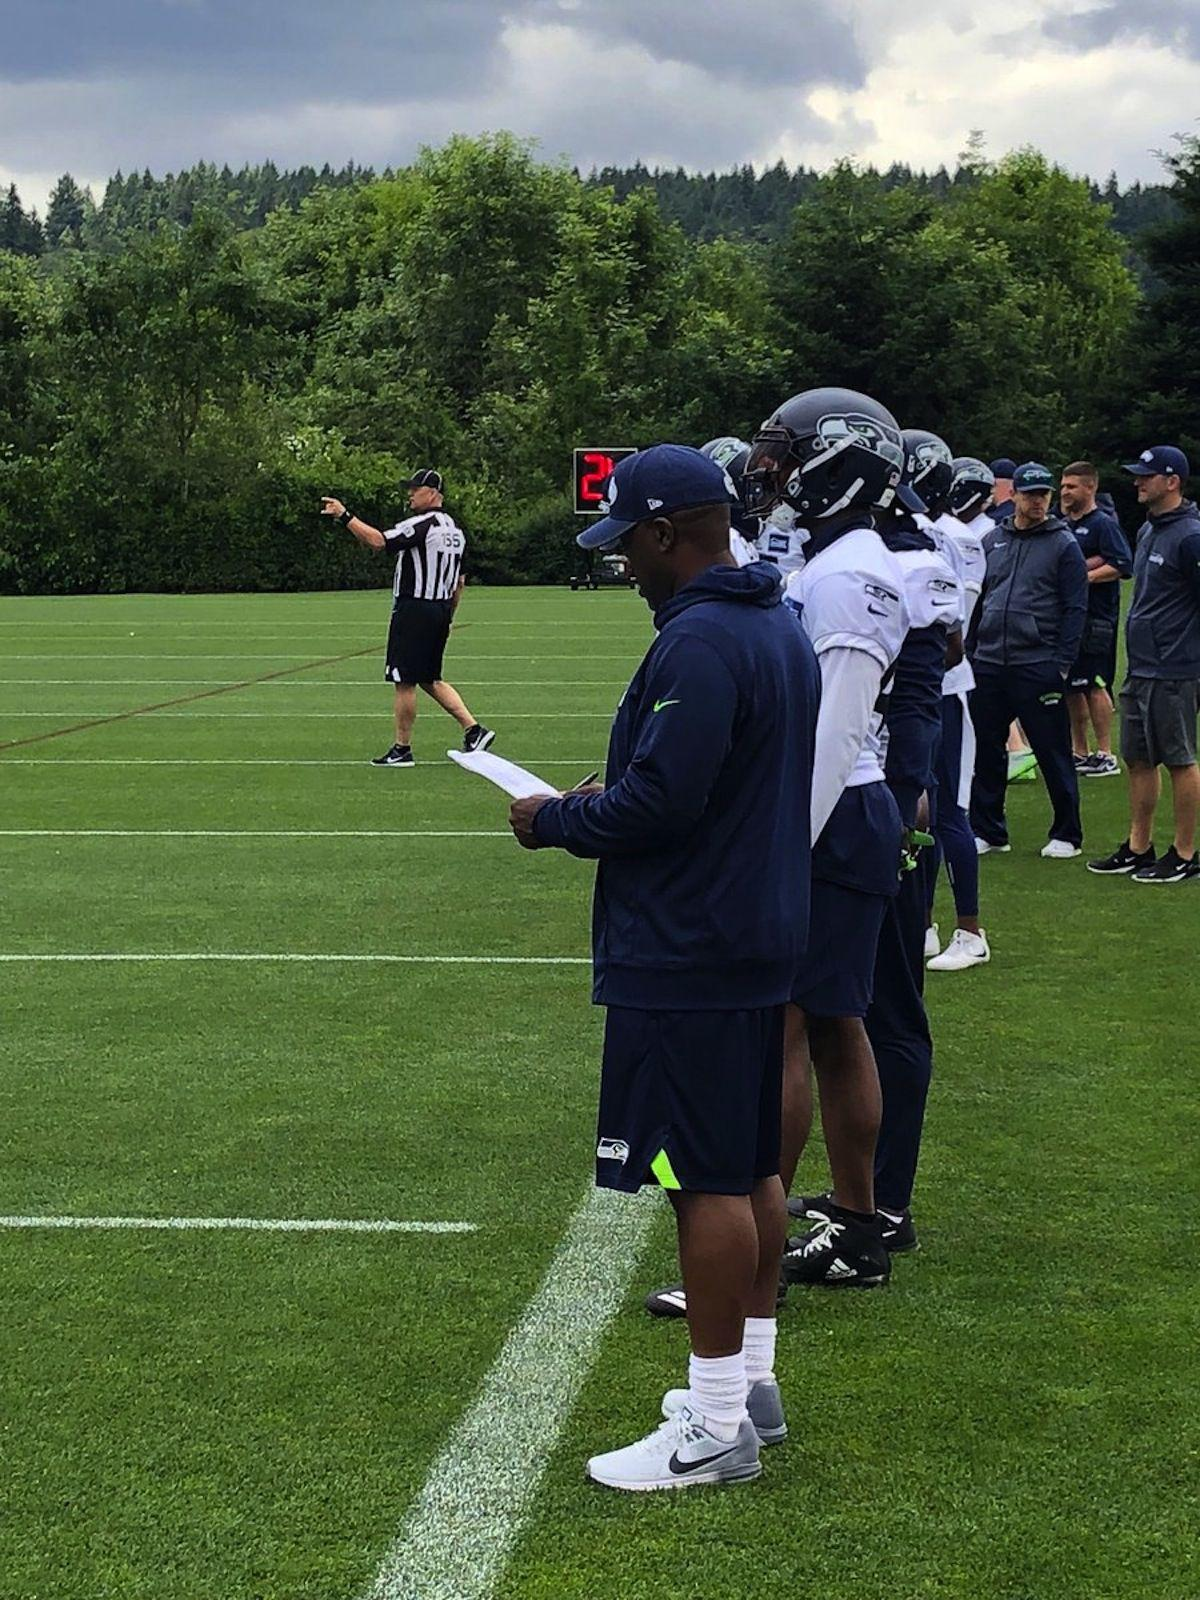 FOOTBALL: Stockbridge head coach Kevin Whitley reflects on mini-camp experience with Seattle Seahawks